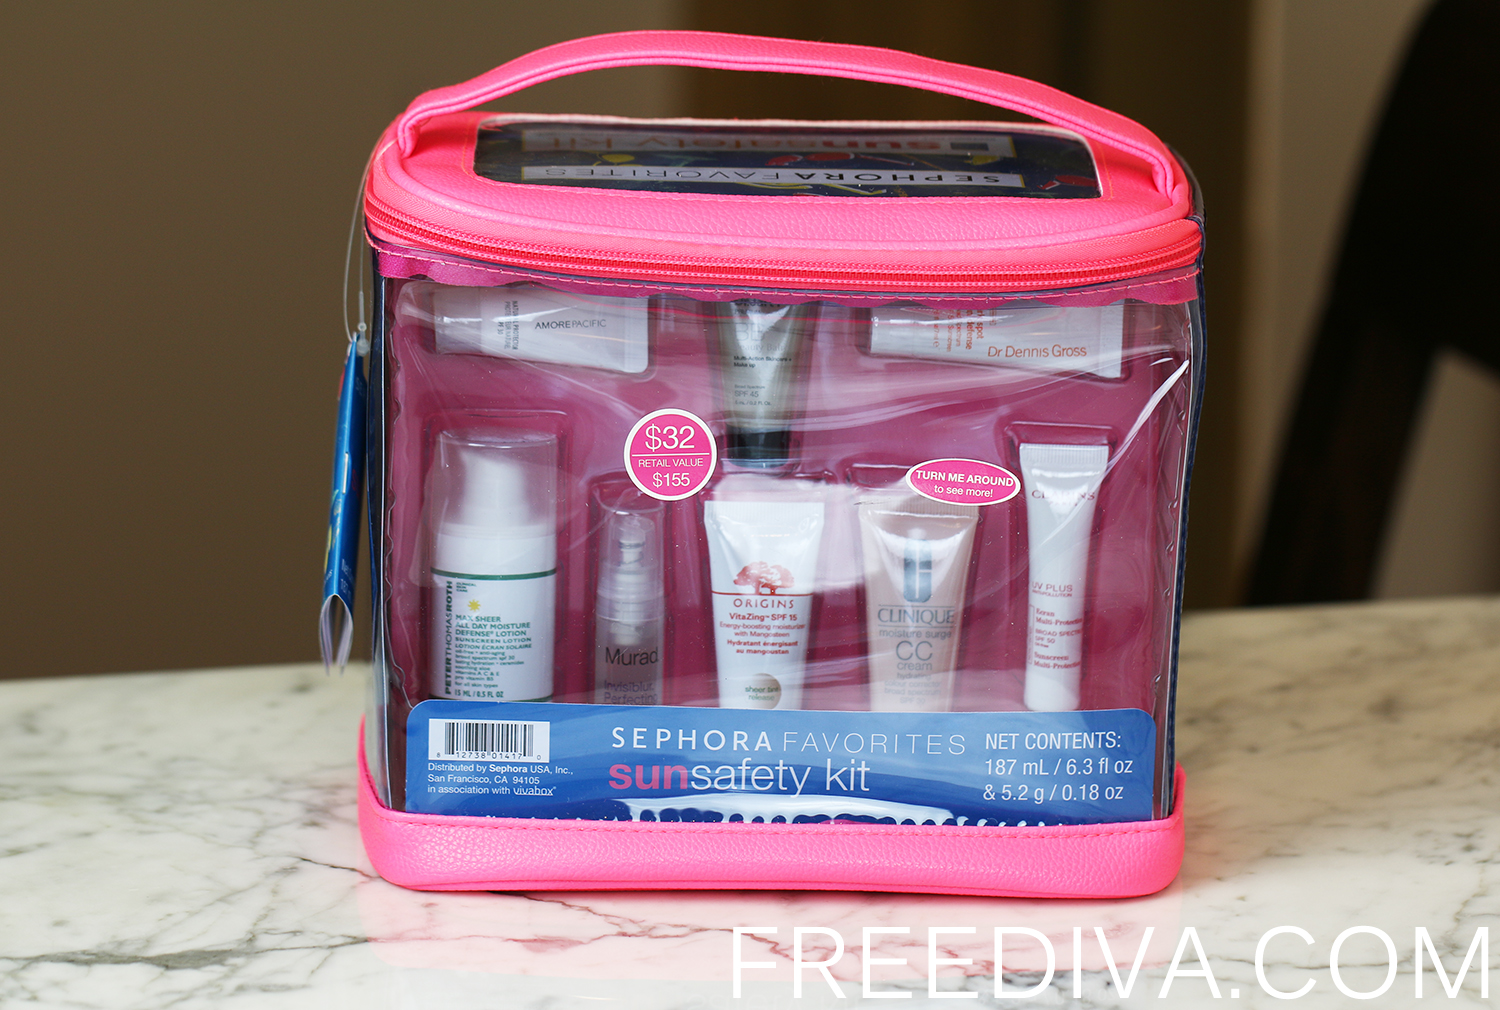 Sun Safety Kit Sephora Favorites 2015